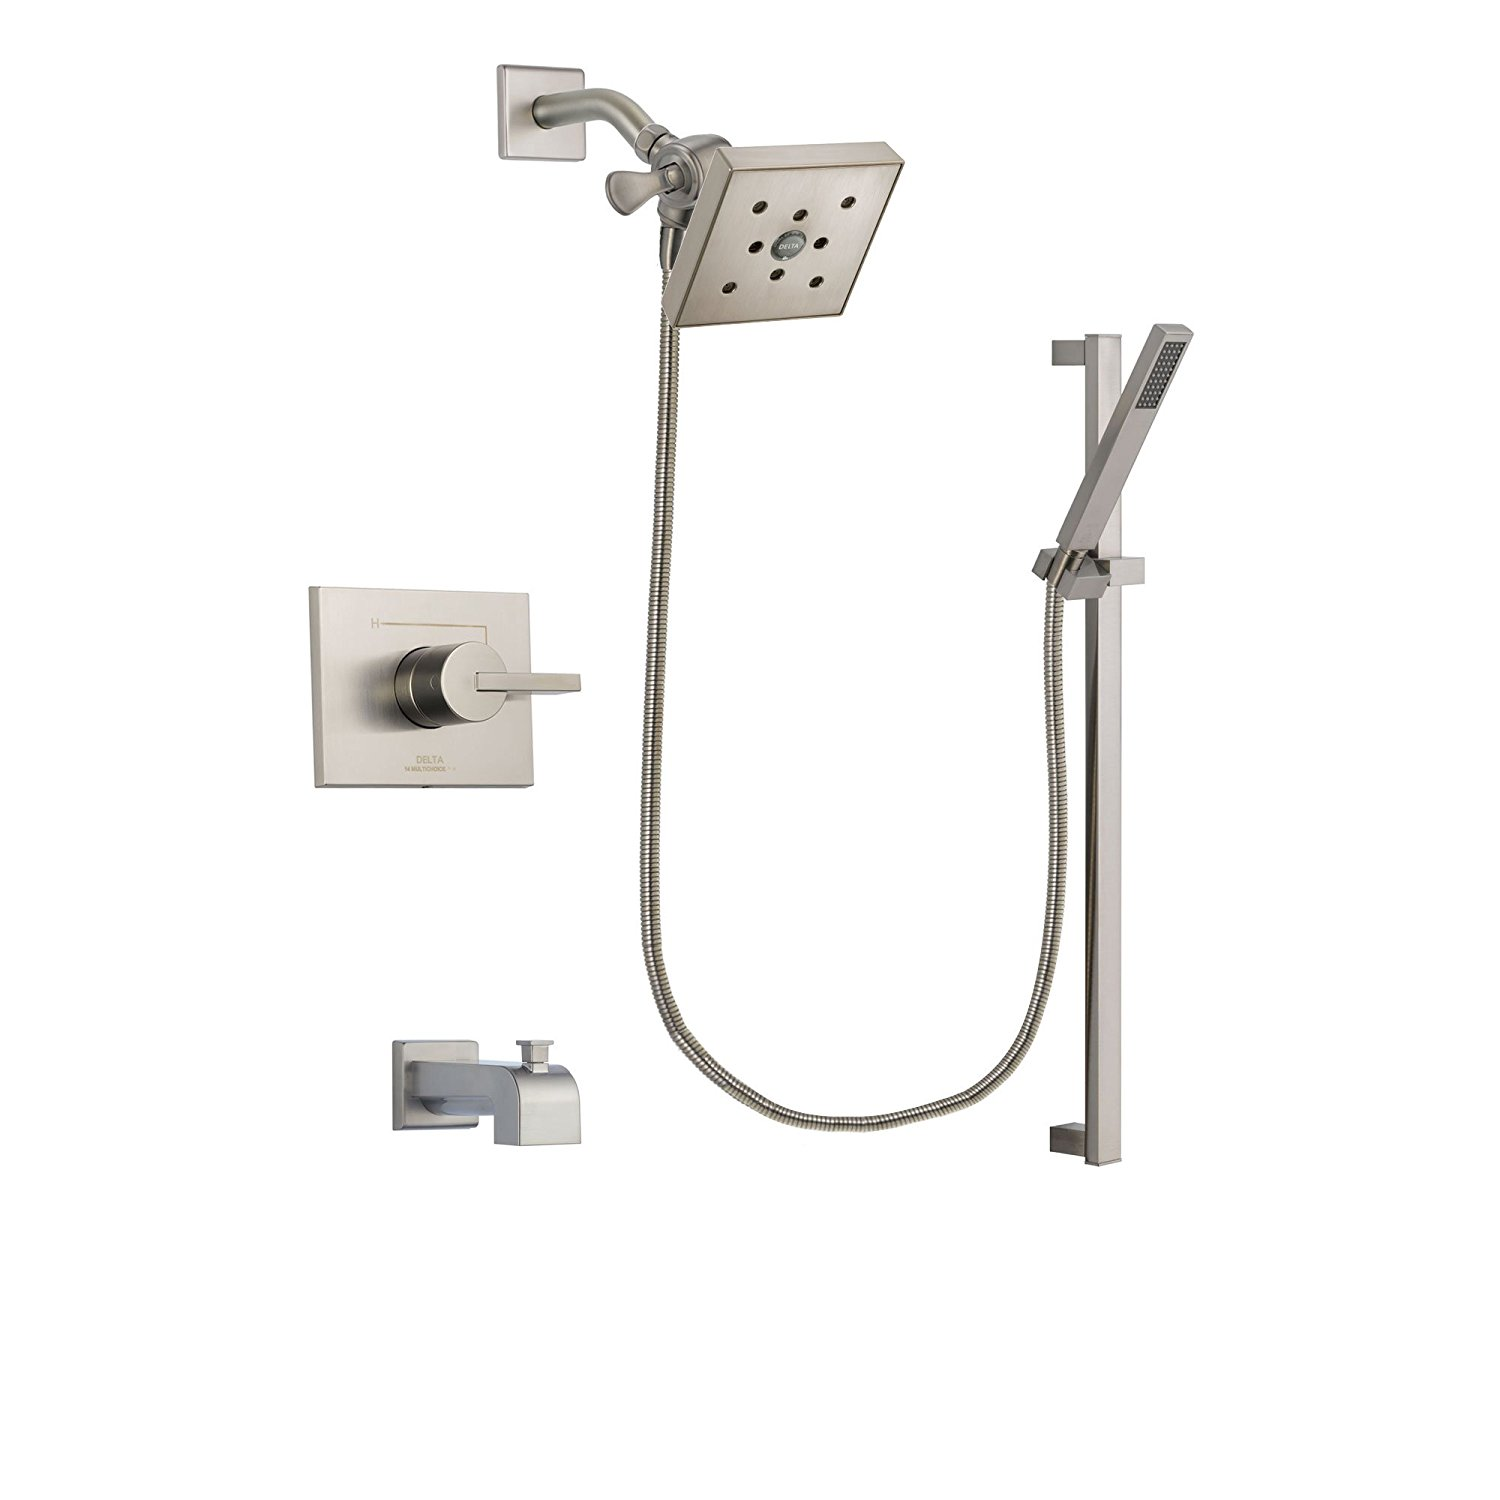 Cheap Delta Tub Shower Valve Find Delta Tub Shower Valve